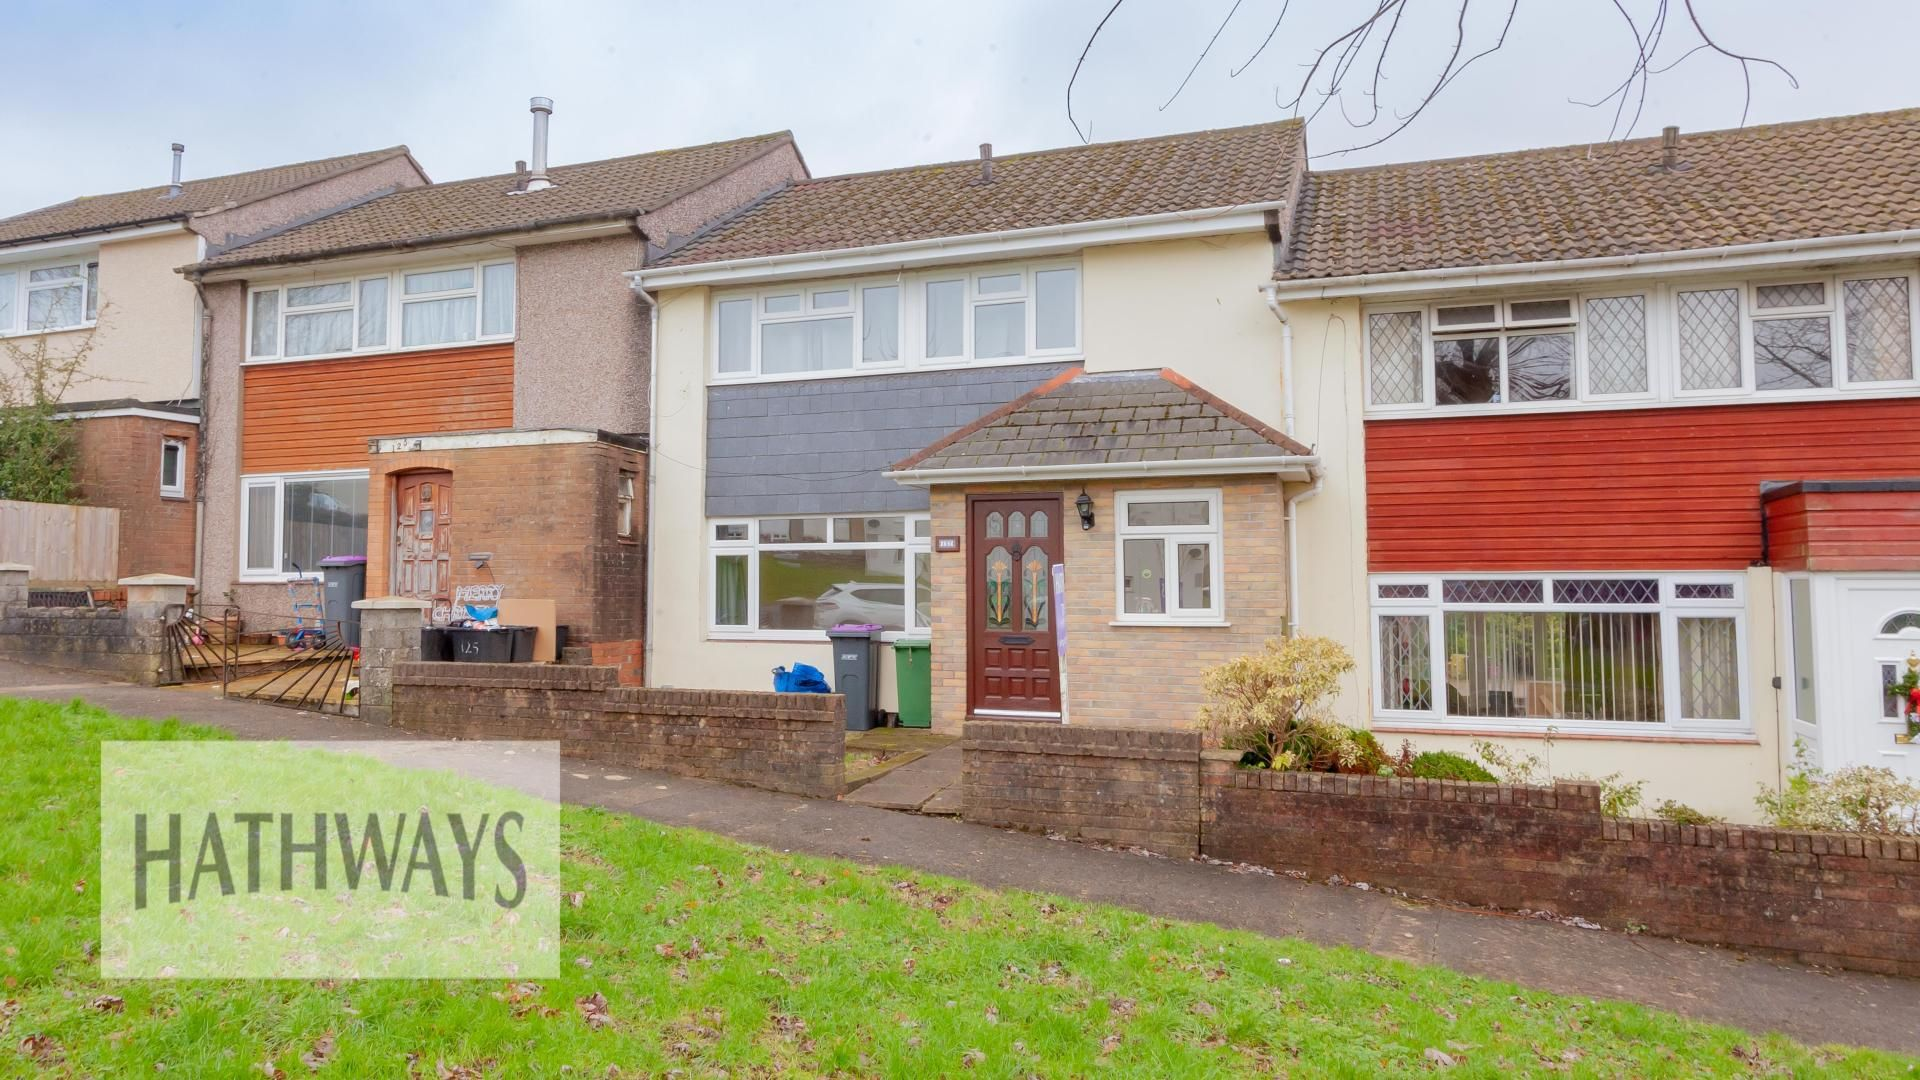 3 bed  for sale in Shakespeare Road, NP44